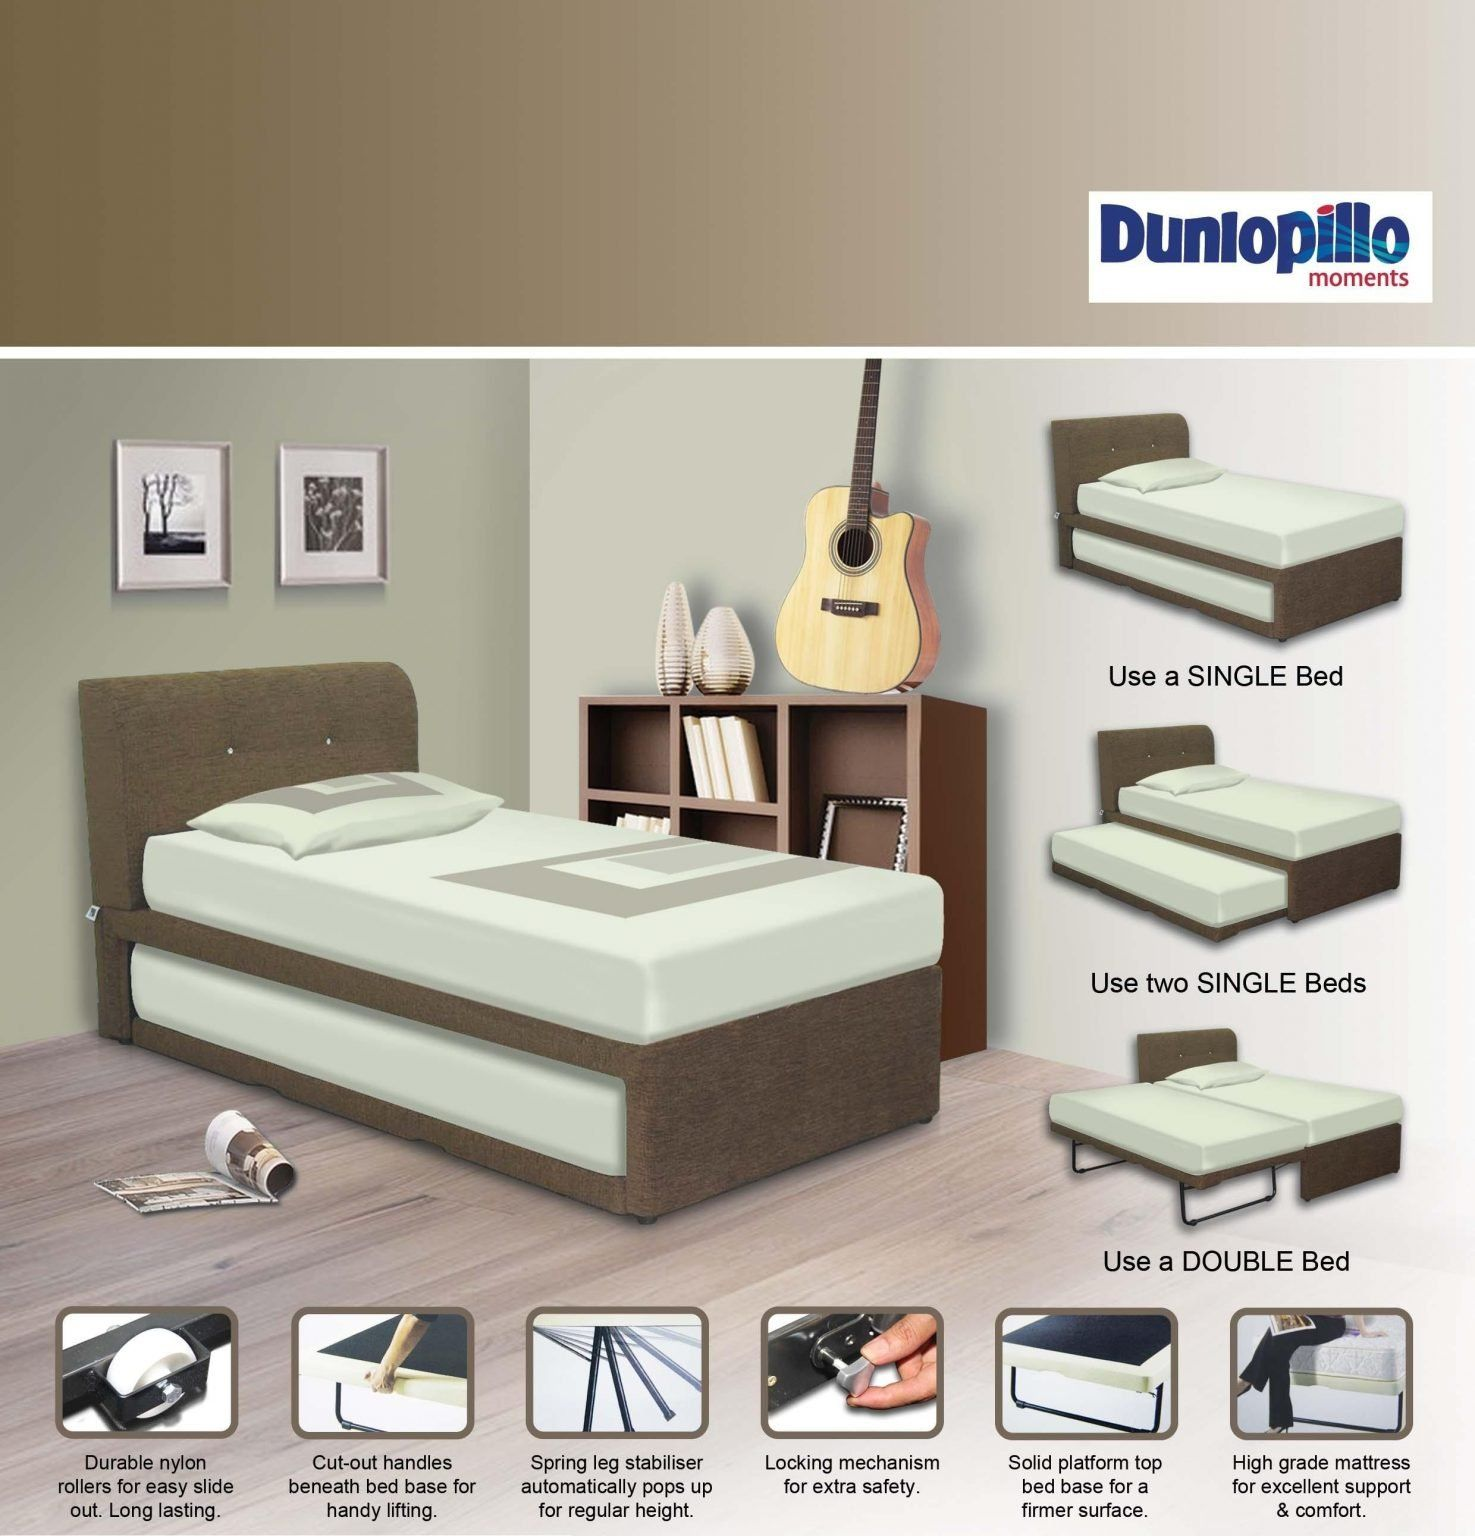 New Harmony Crystal 3 In 1 Pull Out Bed Dunlopillo Singapore In 2020 Pull Out Bed Mattress Sizes Material Bed